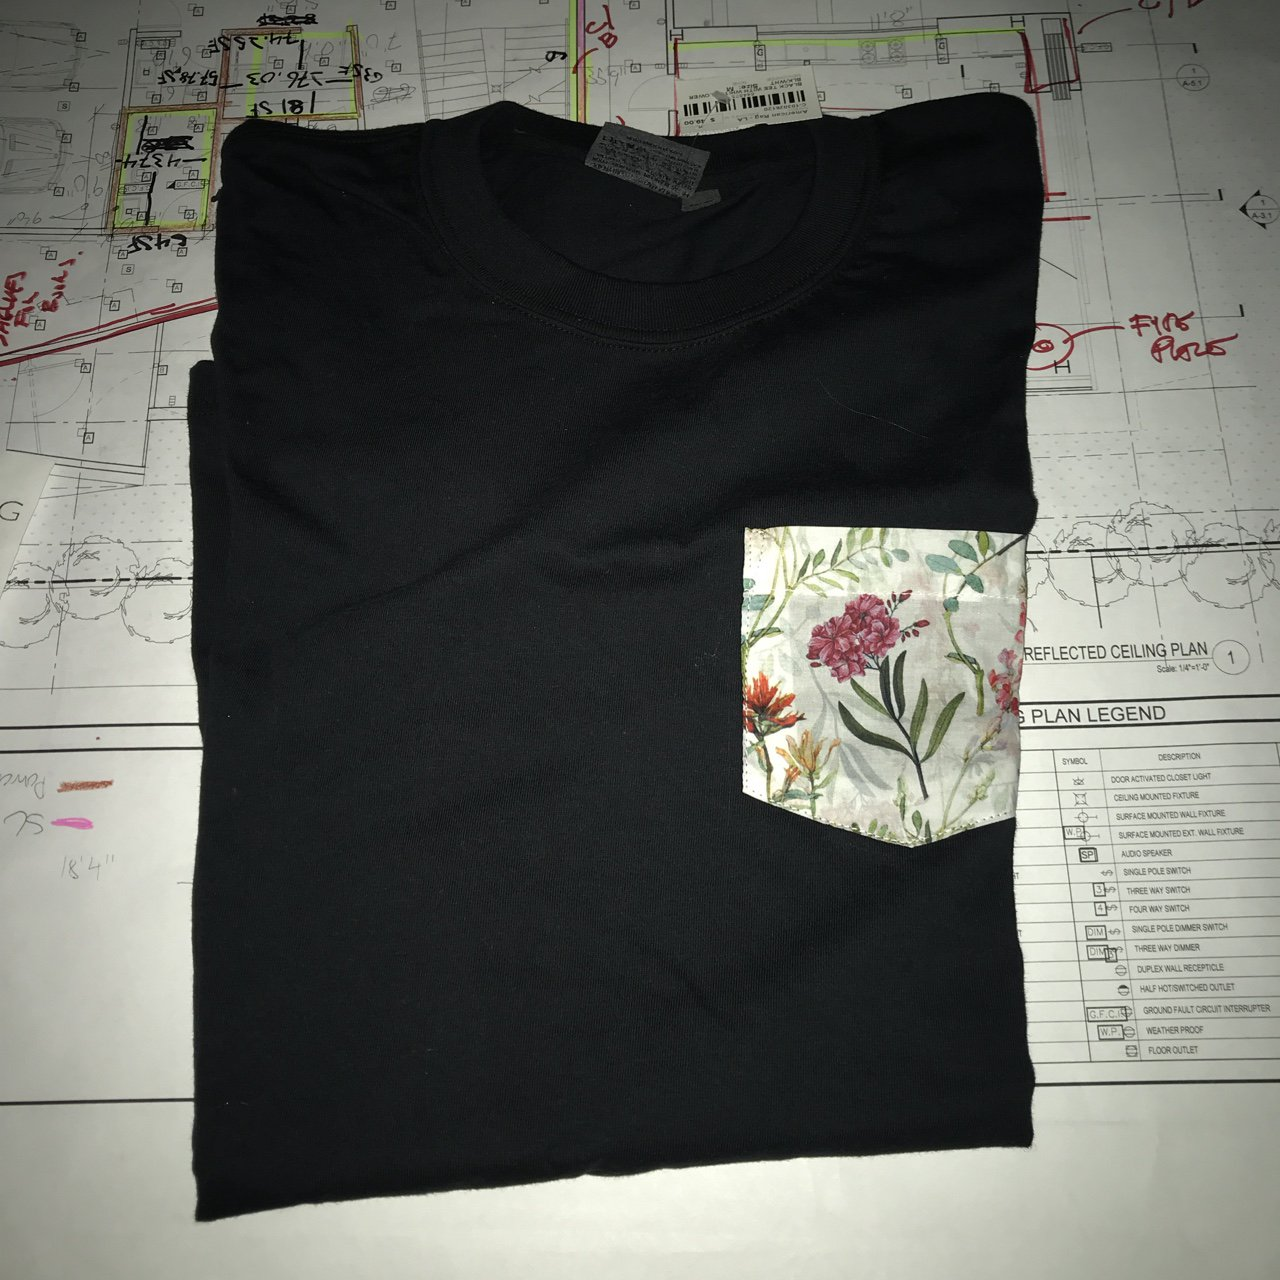 Black Tee With White Flower Blk Wht Purchased At American Depop Symbol For Four Way Switch